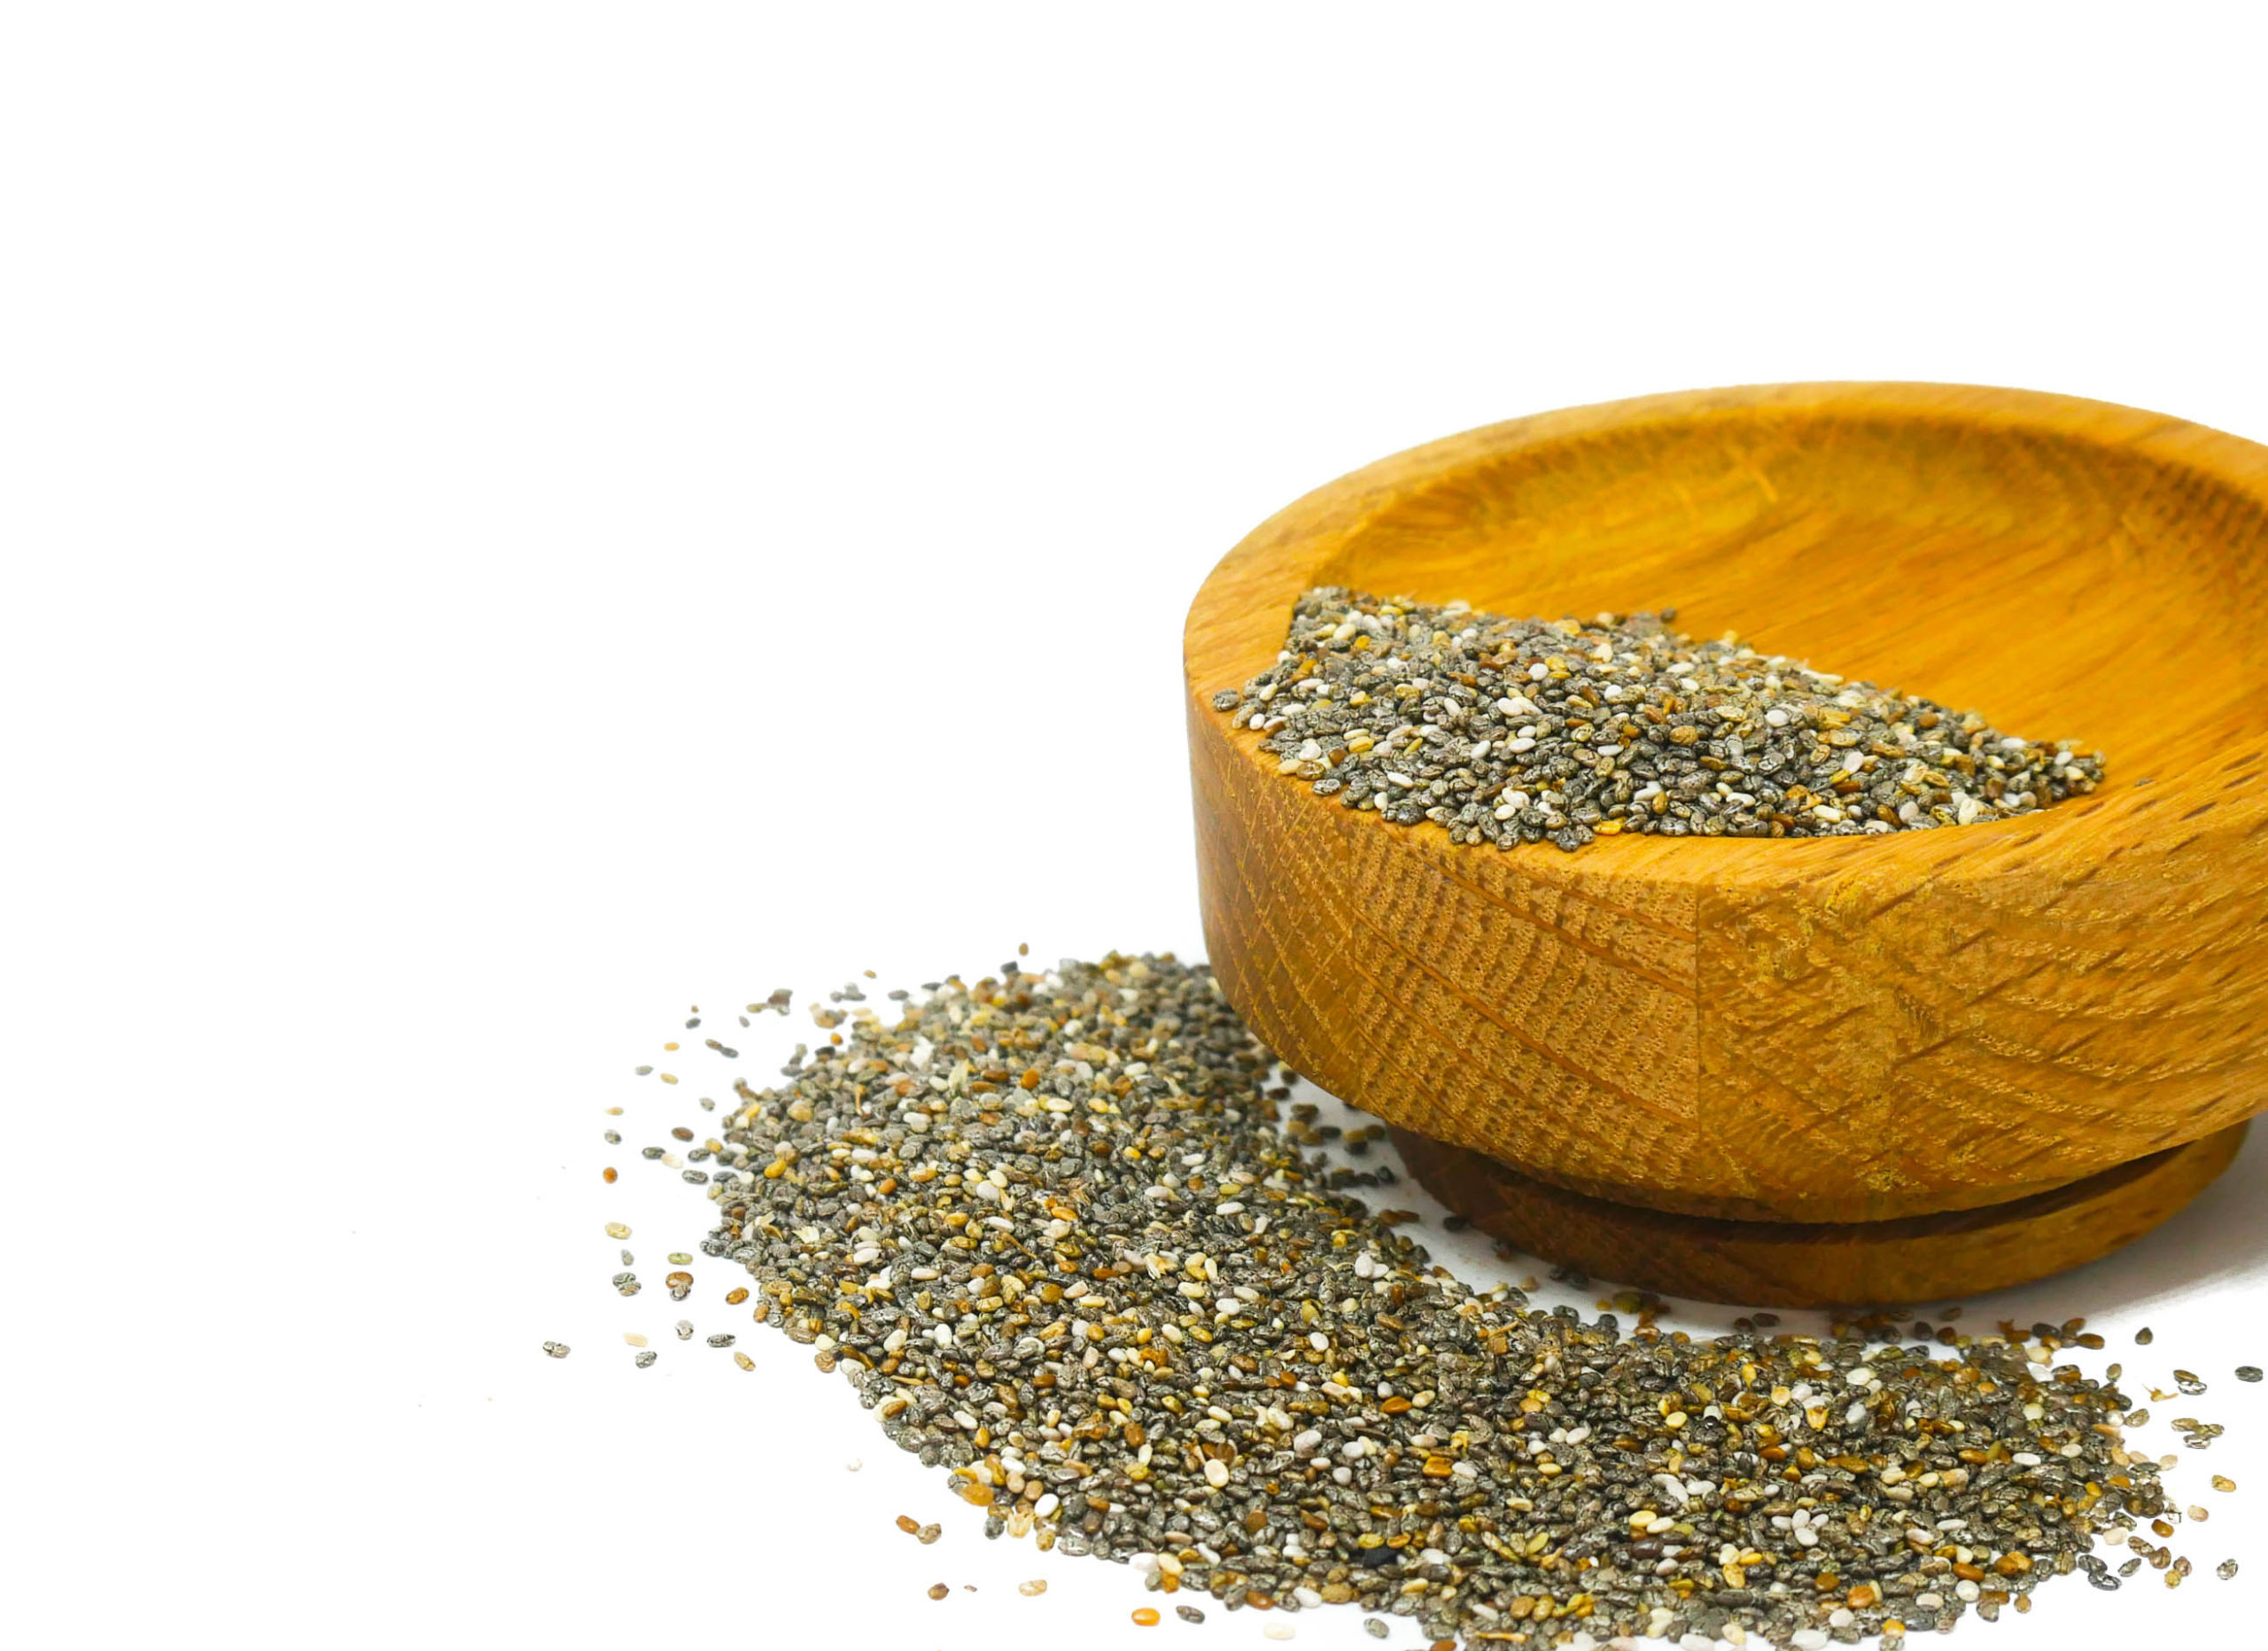 Chia Seed from the Natural Spot